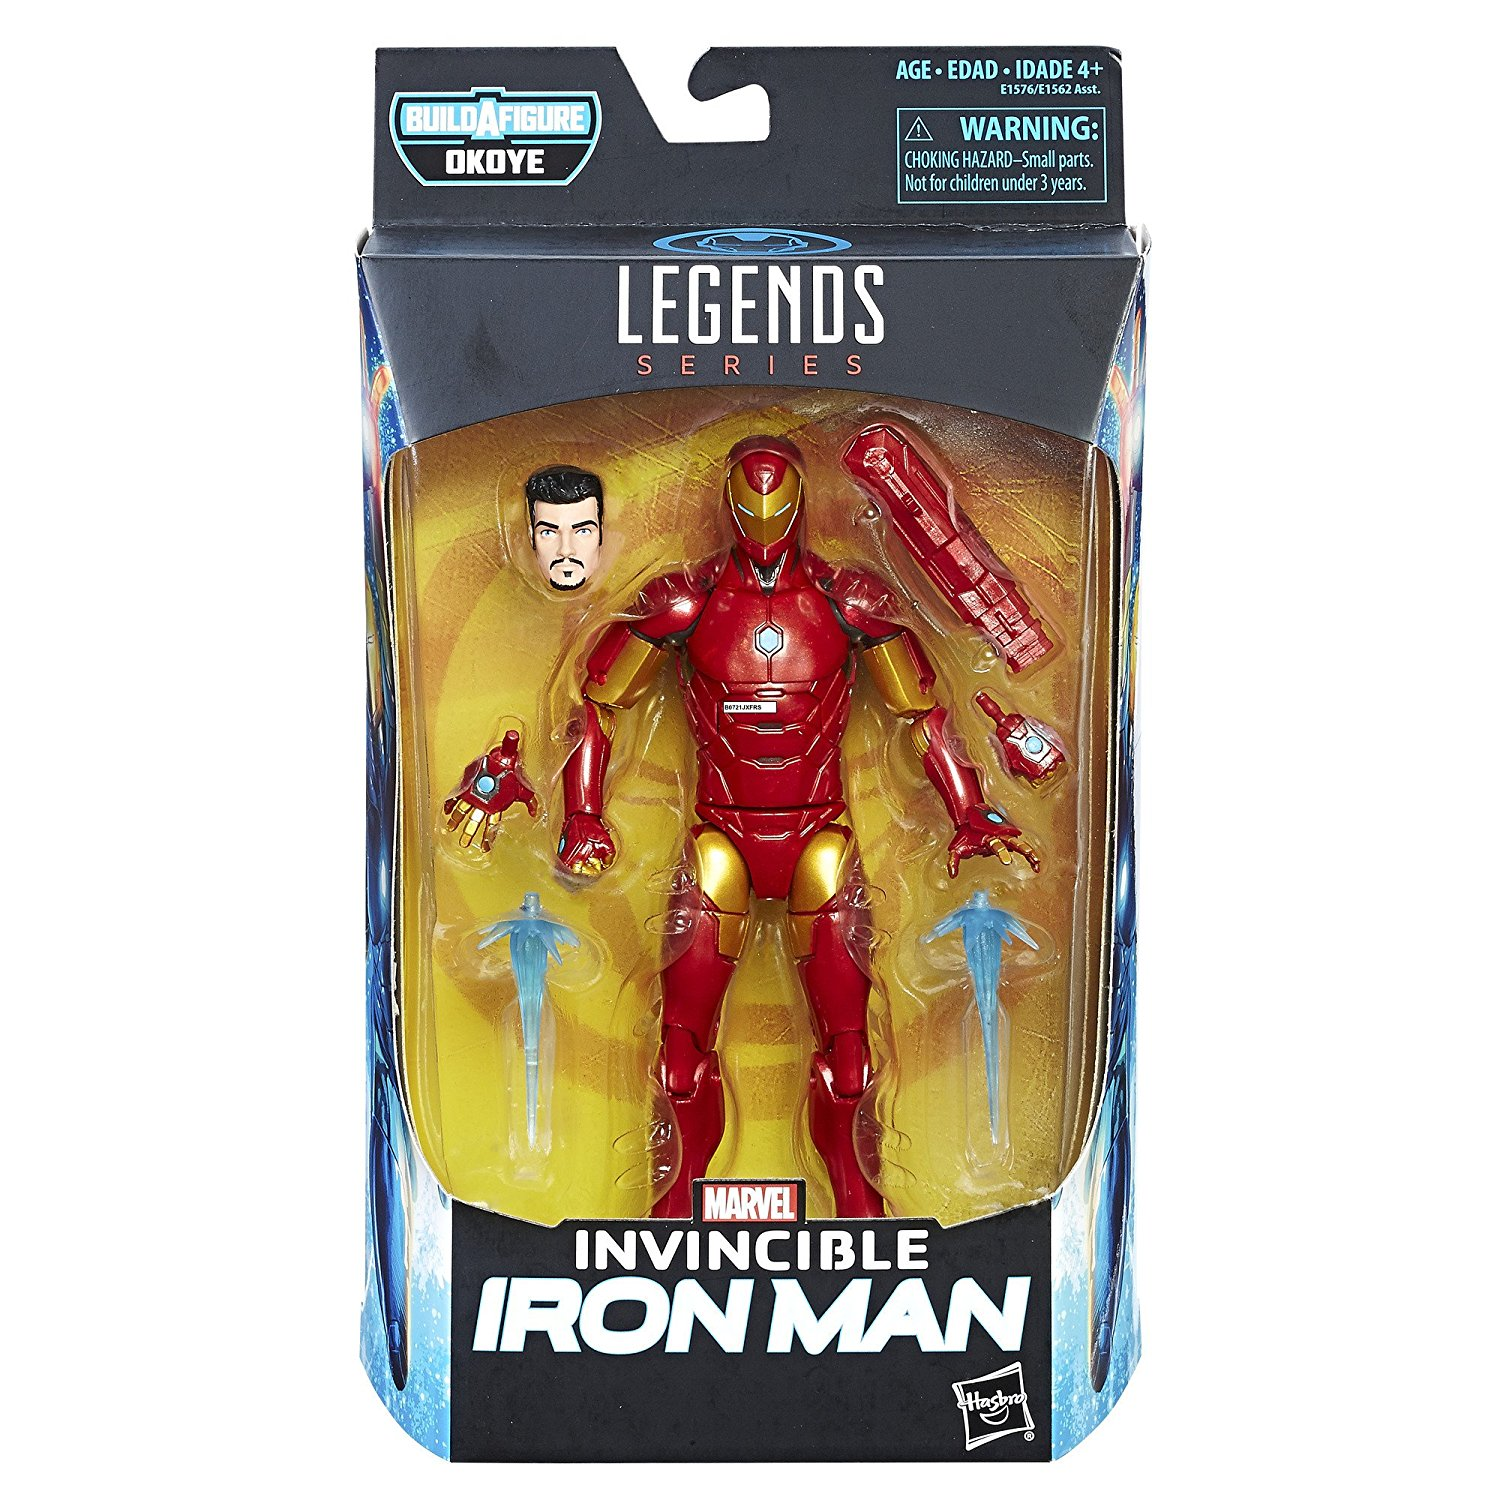 amazon drones shipping with Marvel Black Panther Legends Series Iron Man on Marvel Black Panther Legends Series Nakia together with So Slime Factory further Squishies Cake Slow Rising Kawaii Squishies Great Hand Pillow Toy likewise Automating The Journey To Your Doorstep E8016fcef3b2 furthermore Marvel Black Panther Legends Series Iron Man.